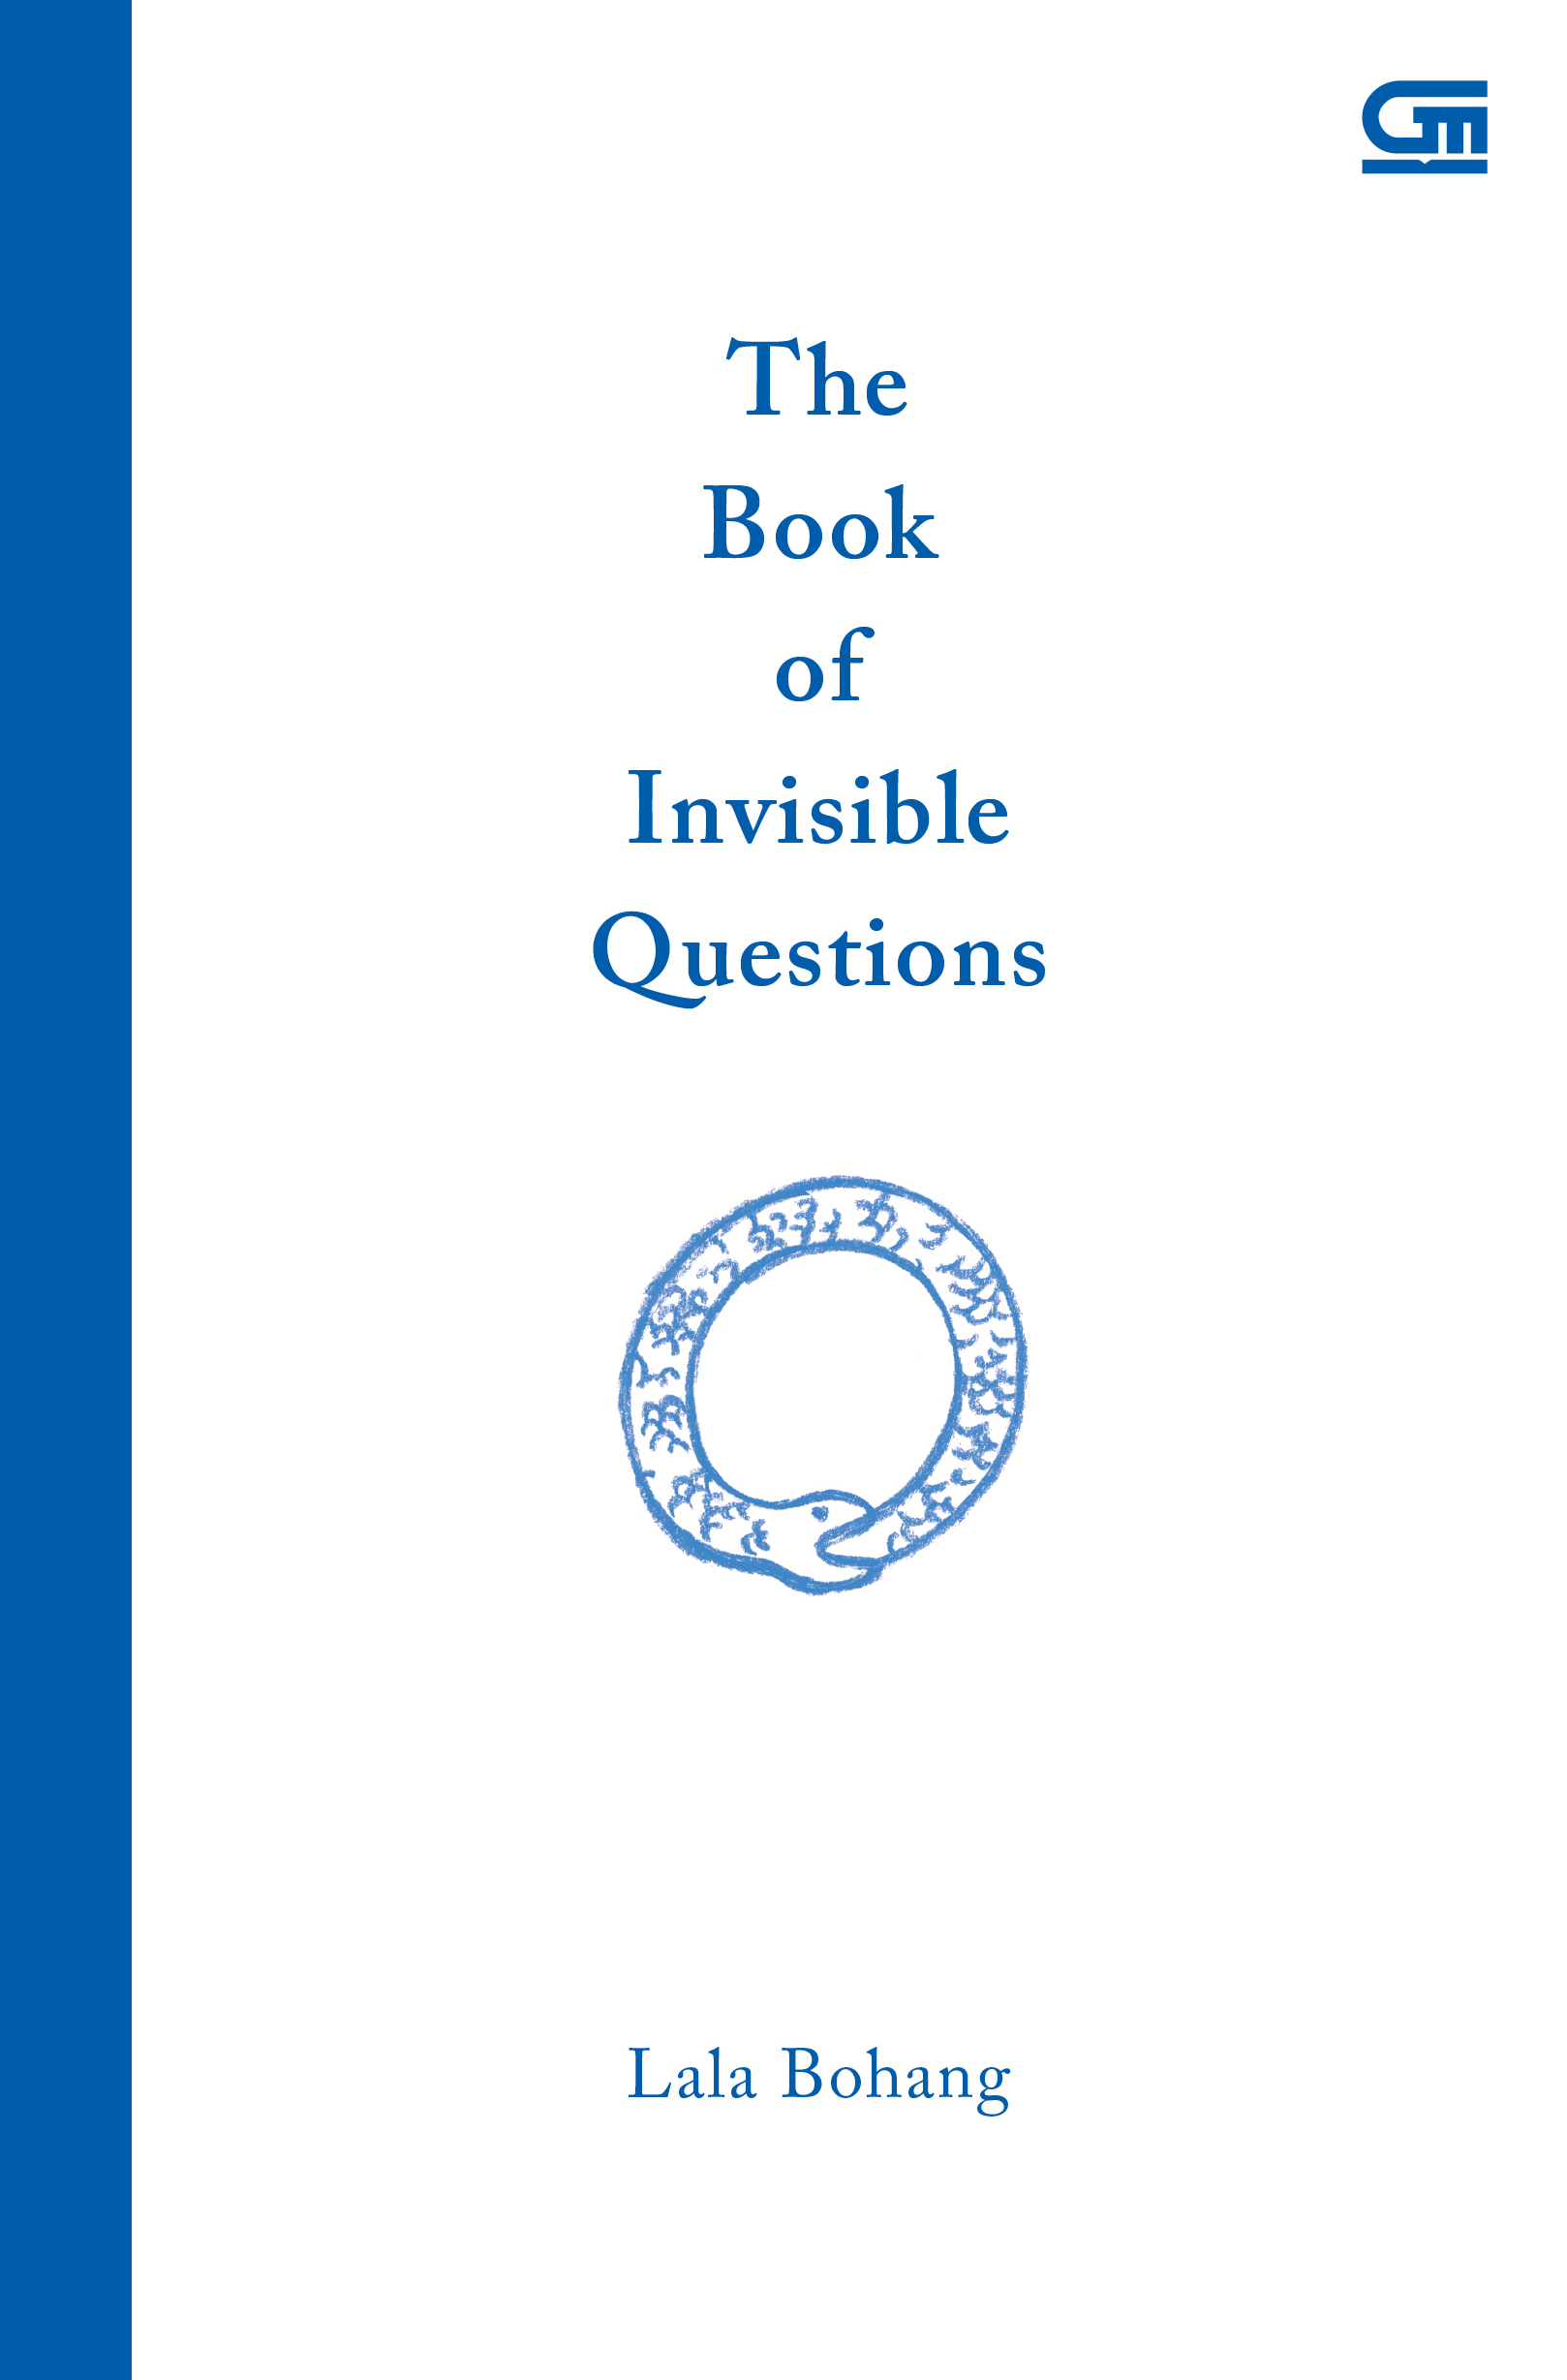 The Book of Invisible Questions